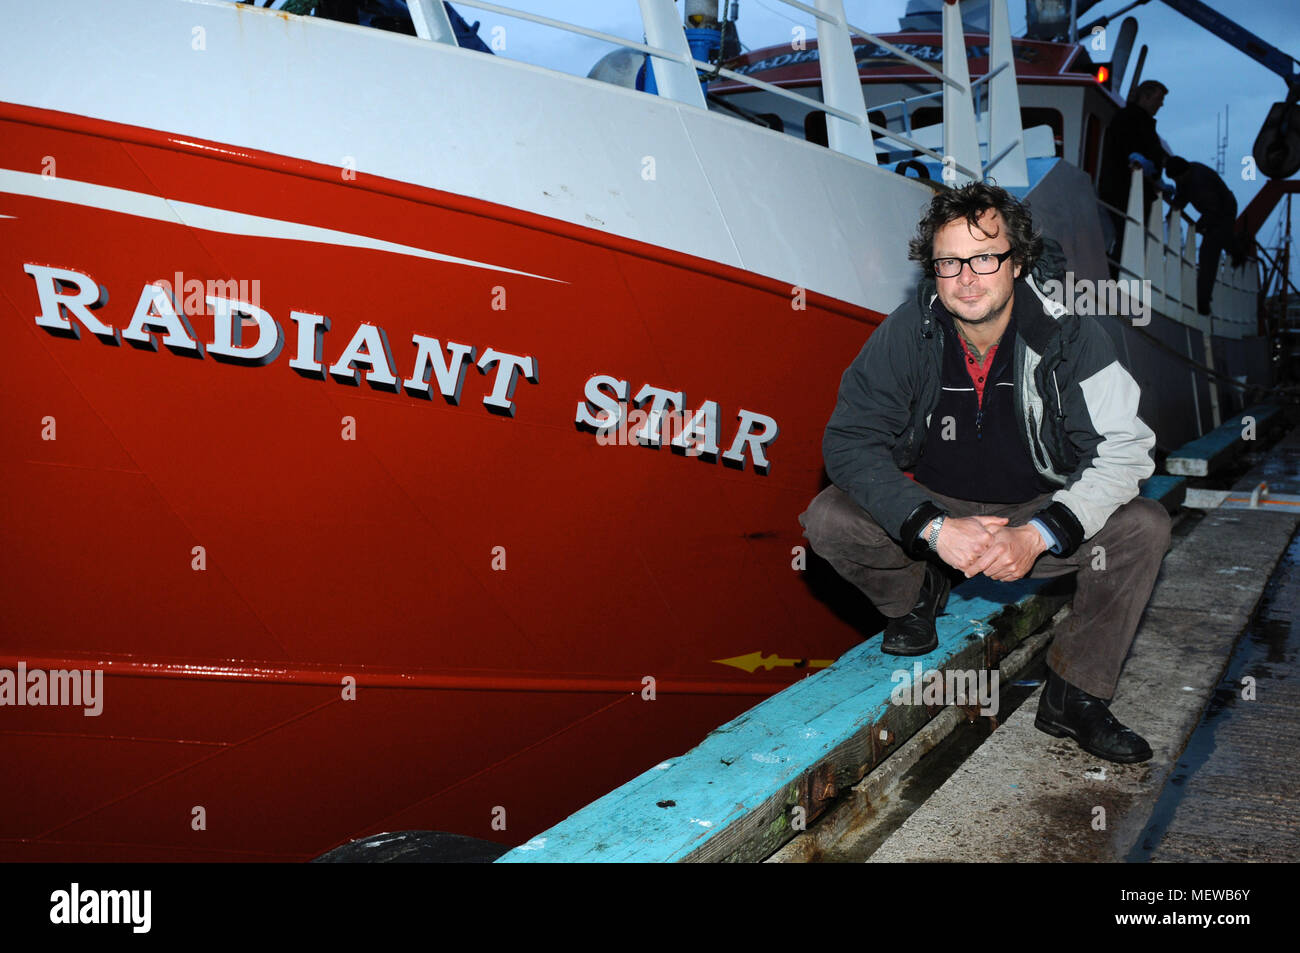 Hugh Fearnley Whittingstall on the Radiant Star fishing boat in Scalloway Shetland - Stock Image